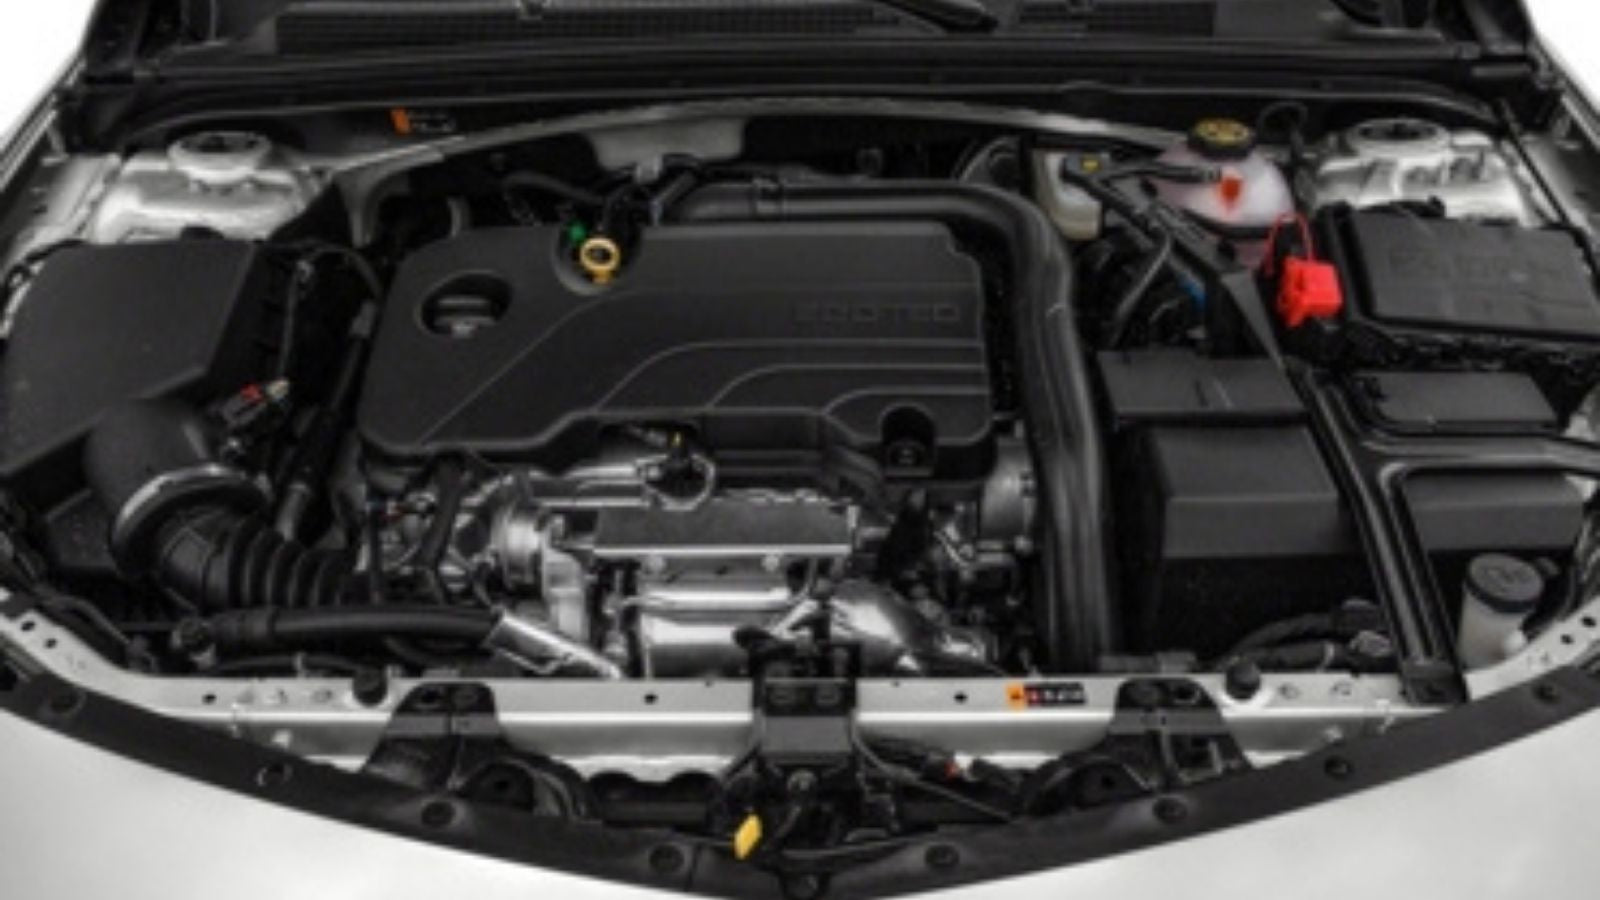 2020 Chevrolet Malibu Engine Oil Specifications